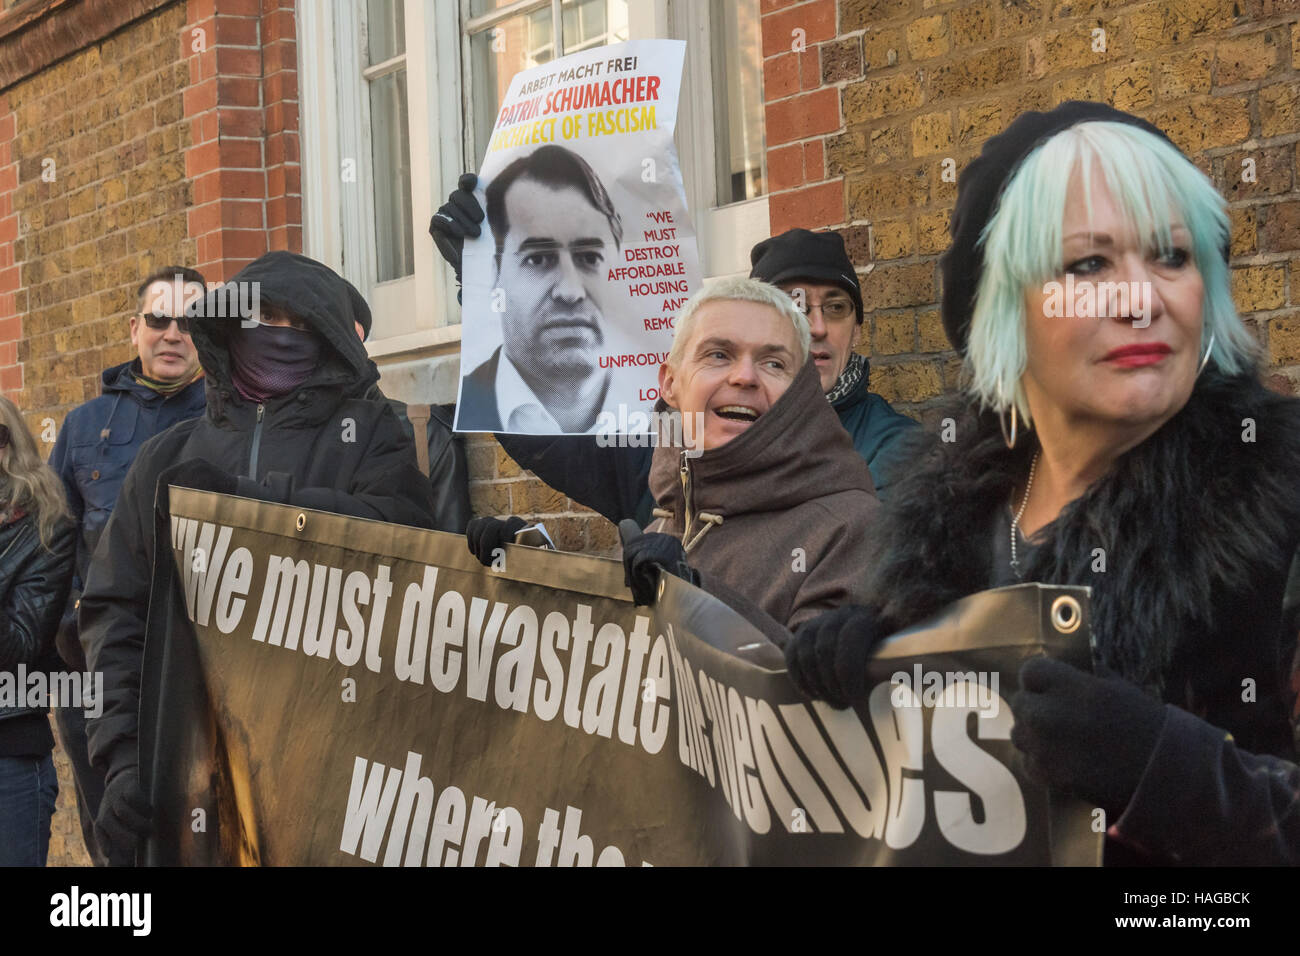 London, UK. 30th November 2016.  Class War and others protest outside the London offices of Zaha Hadid Architects - Stock Image